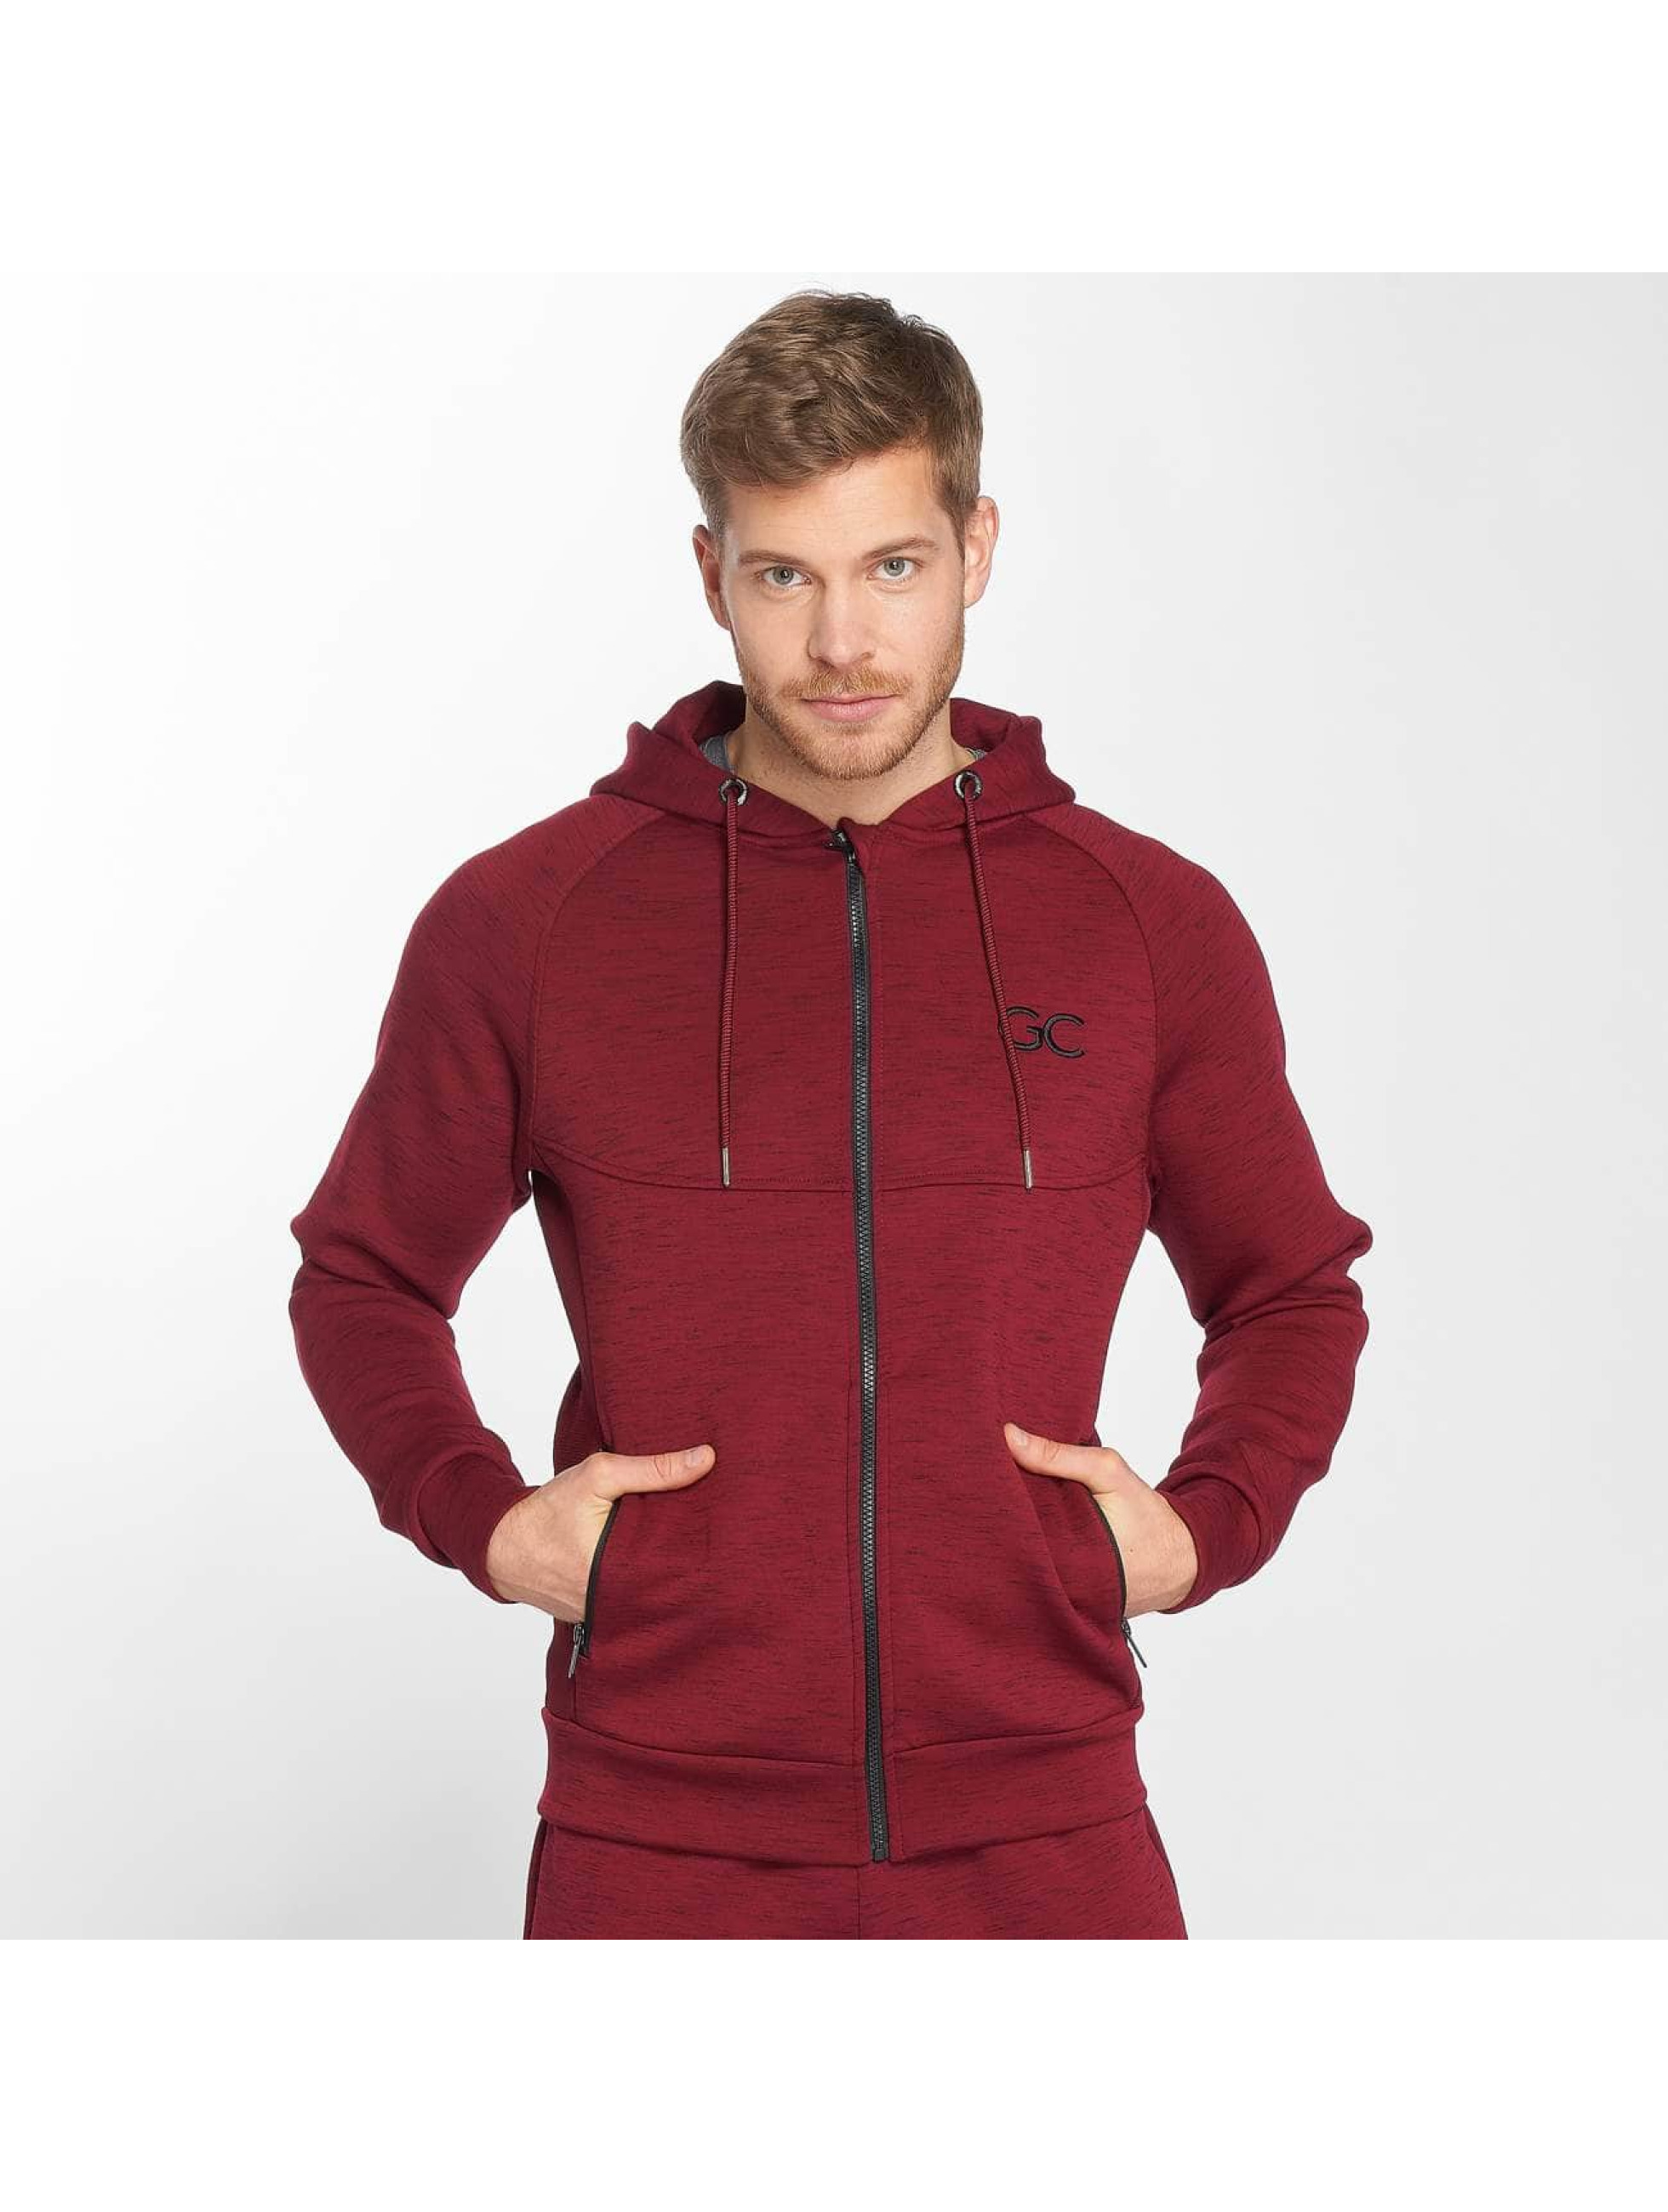 GymCodes Zip Hoodie Athletic-Fit red